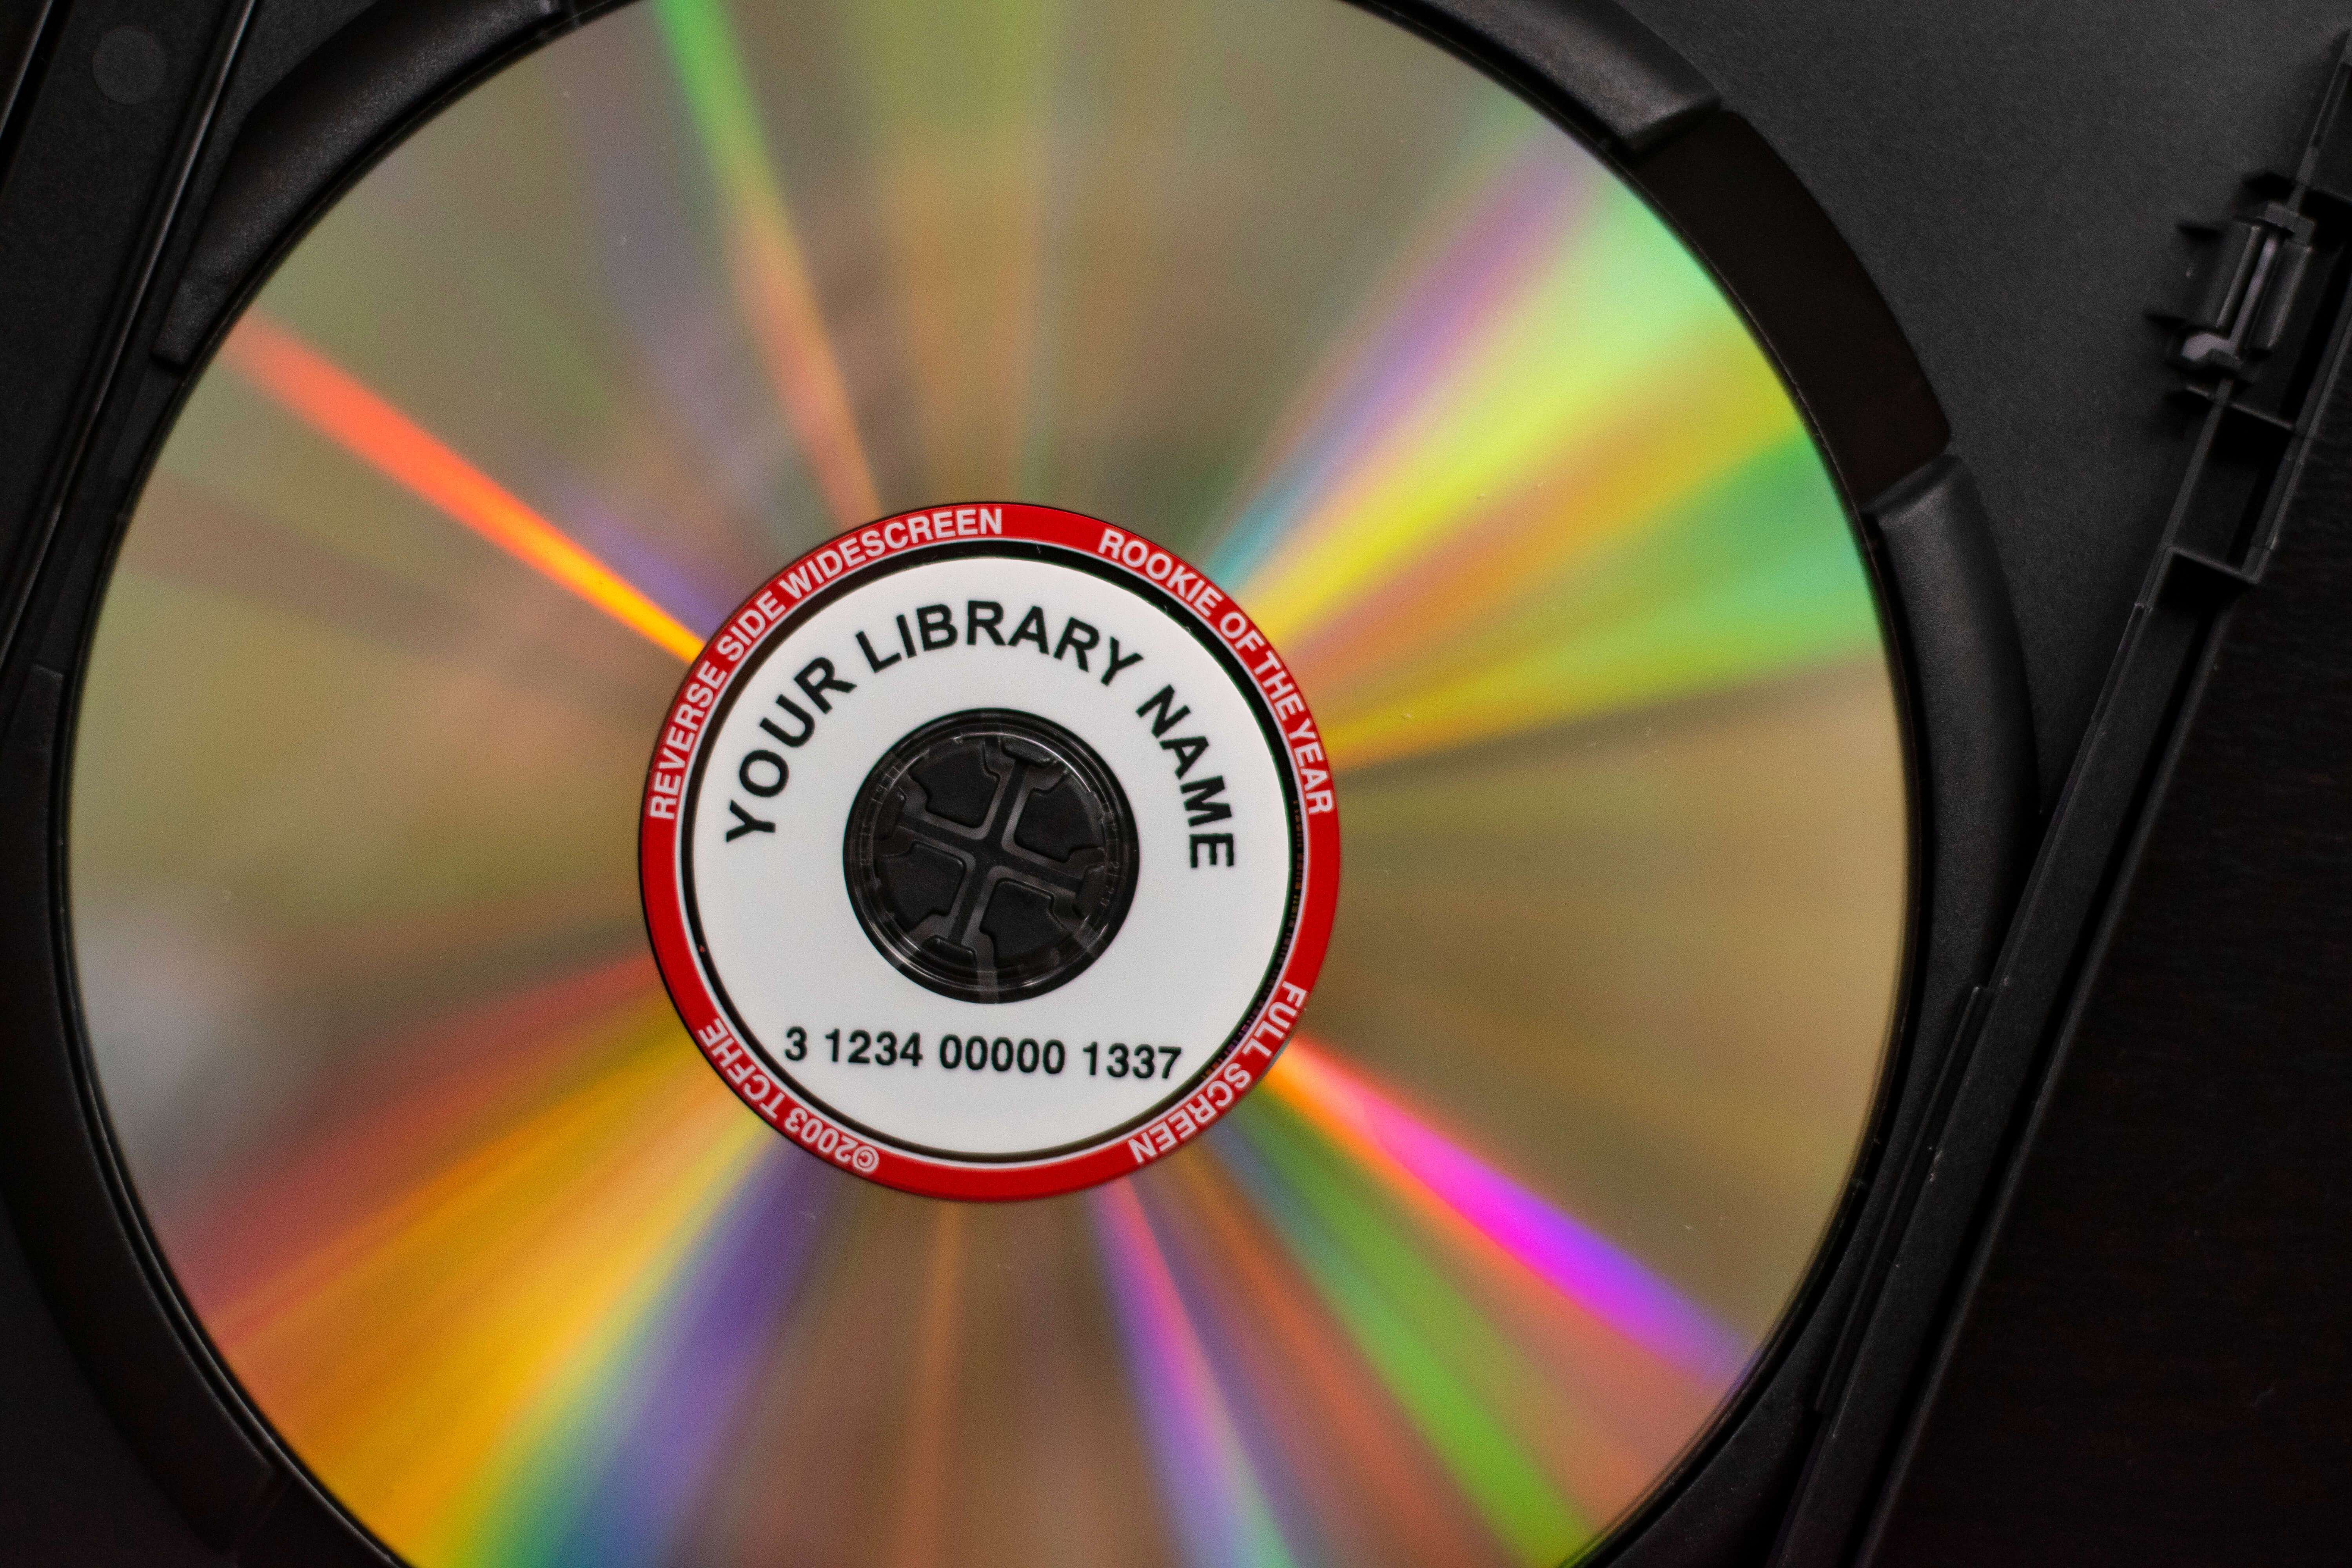 Library Barcode Labels & Patron Cards | ID Label Inc